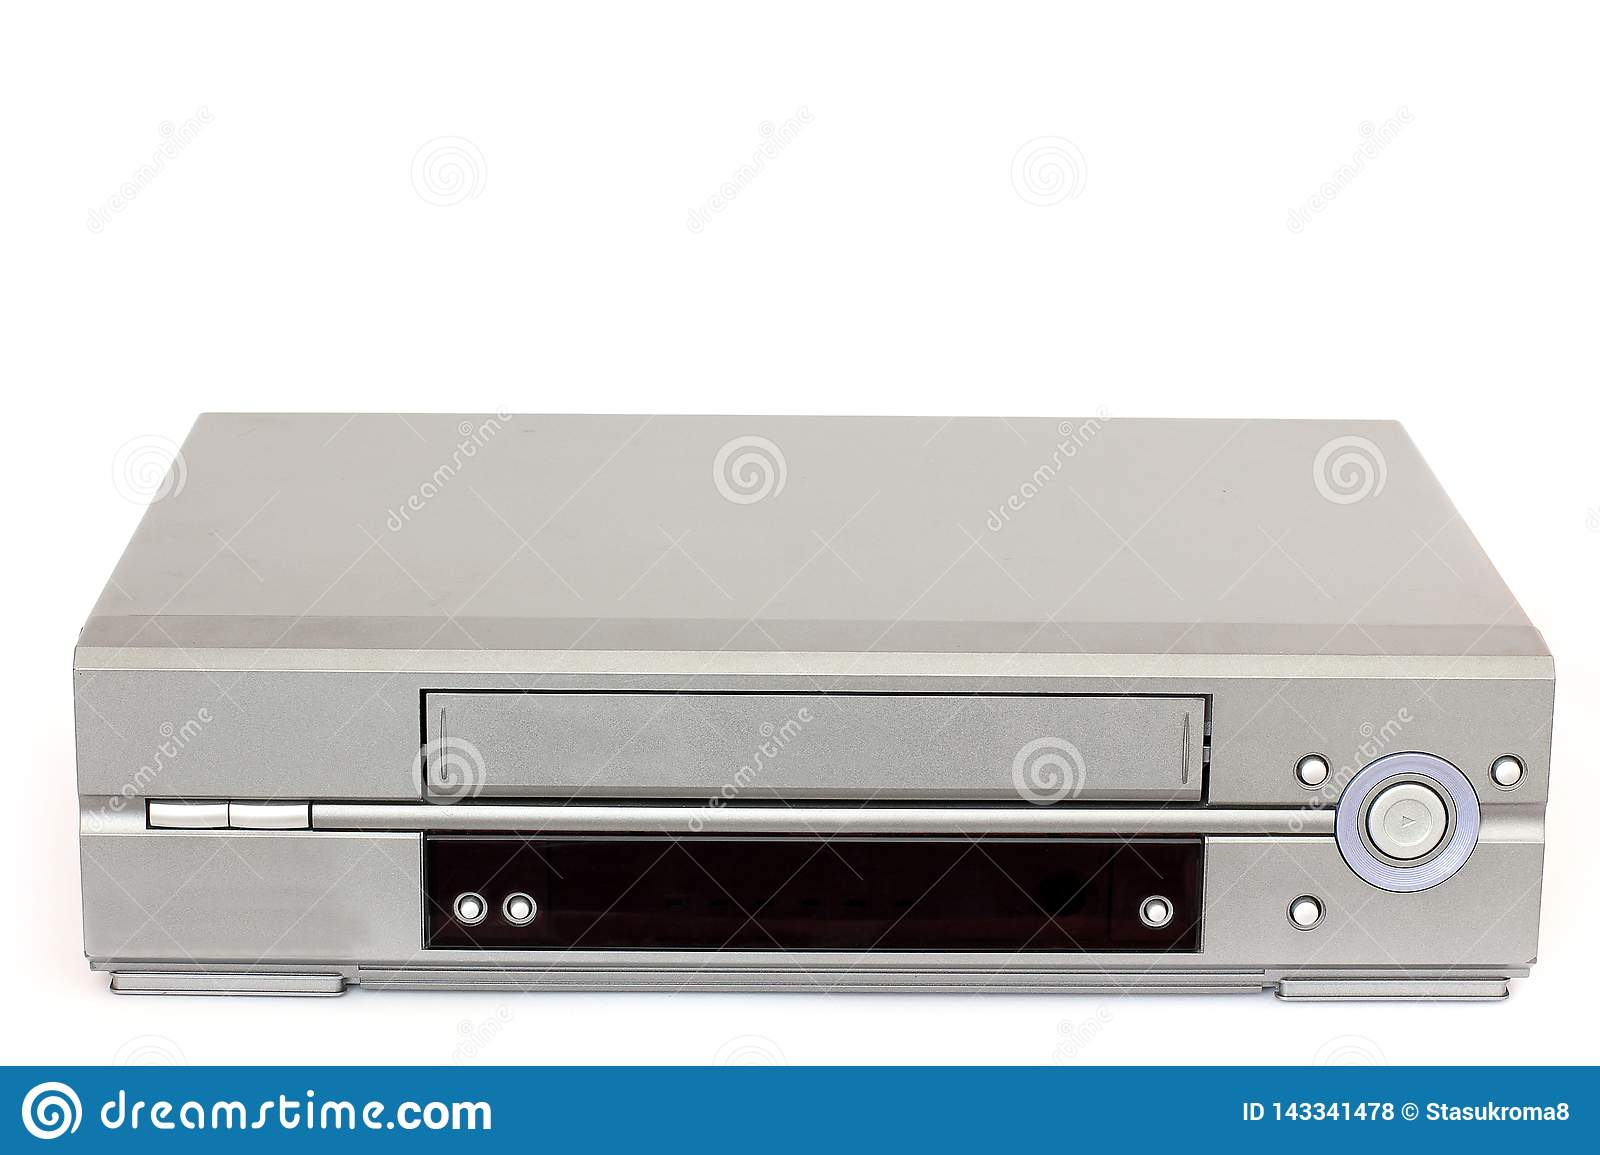 VCR on a white background